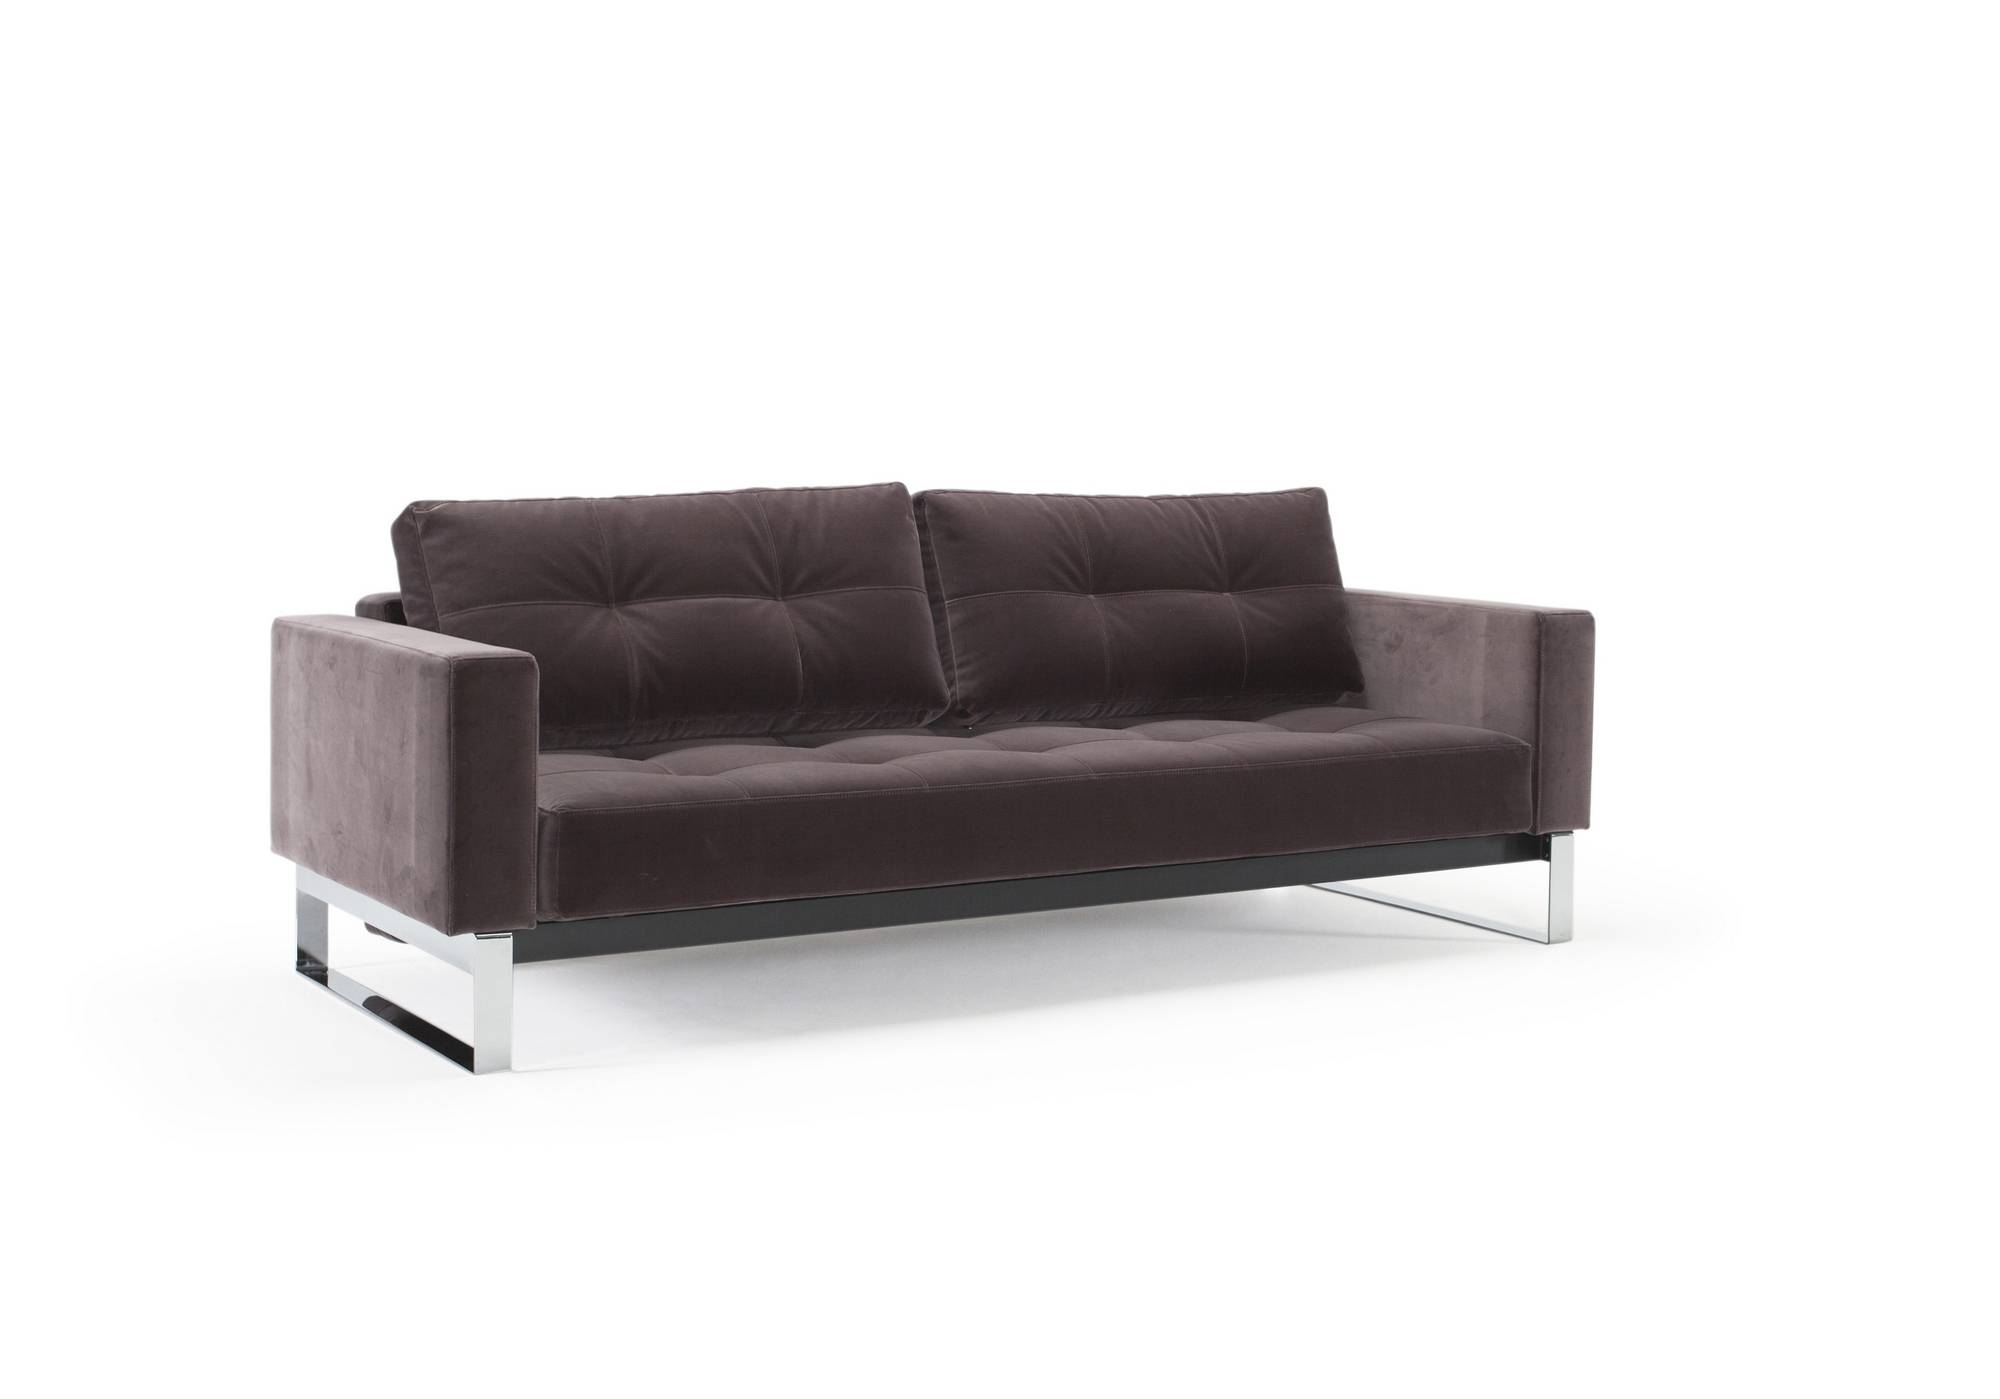 Furniture: Breathtaking Grey Velvet Sofa For Charming Home intended for Sofas With Chrome Legs (Image 10 of 15)